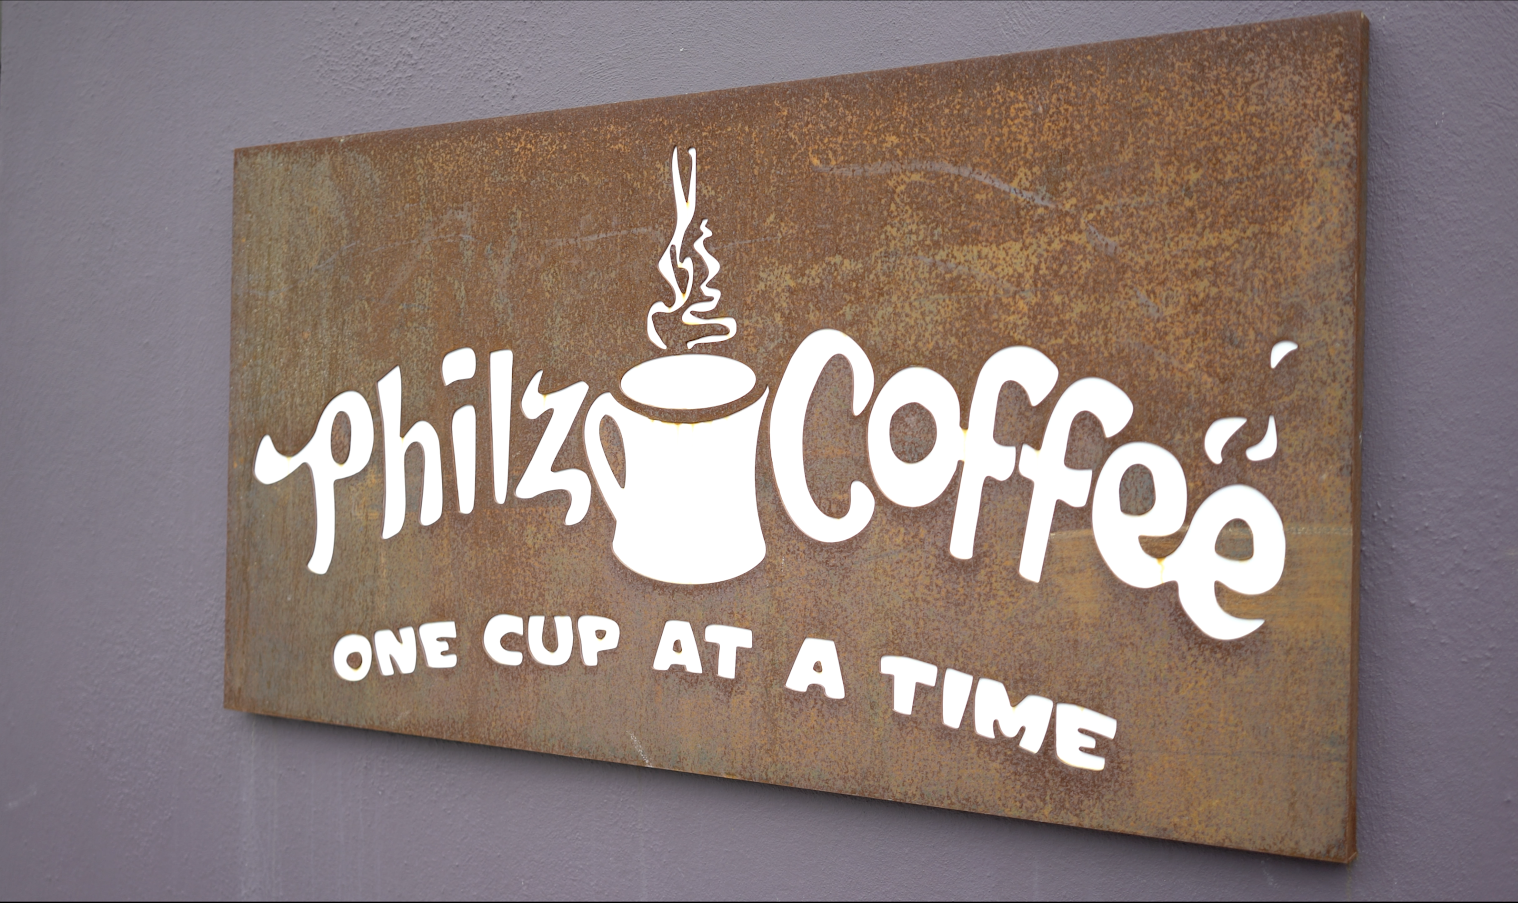 Philz_Coffee_Scales_Quality_Consistency_4